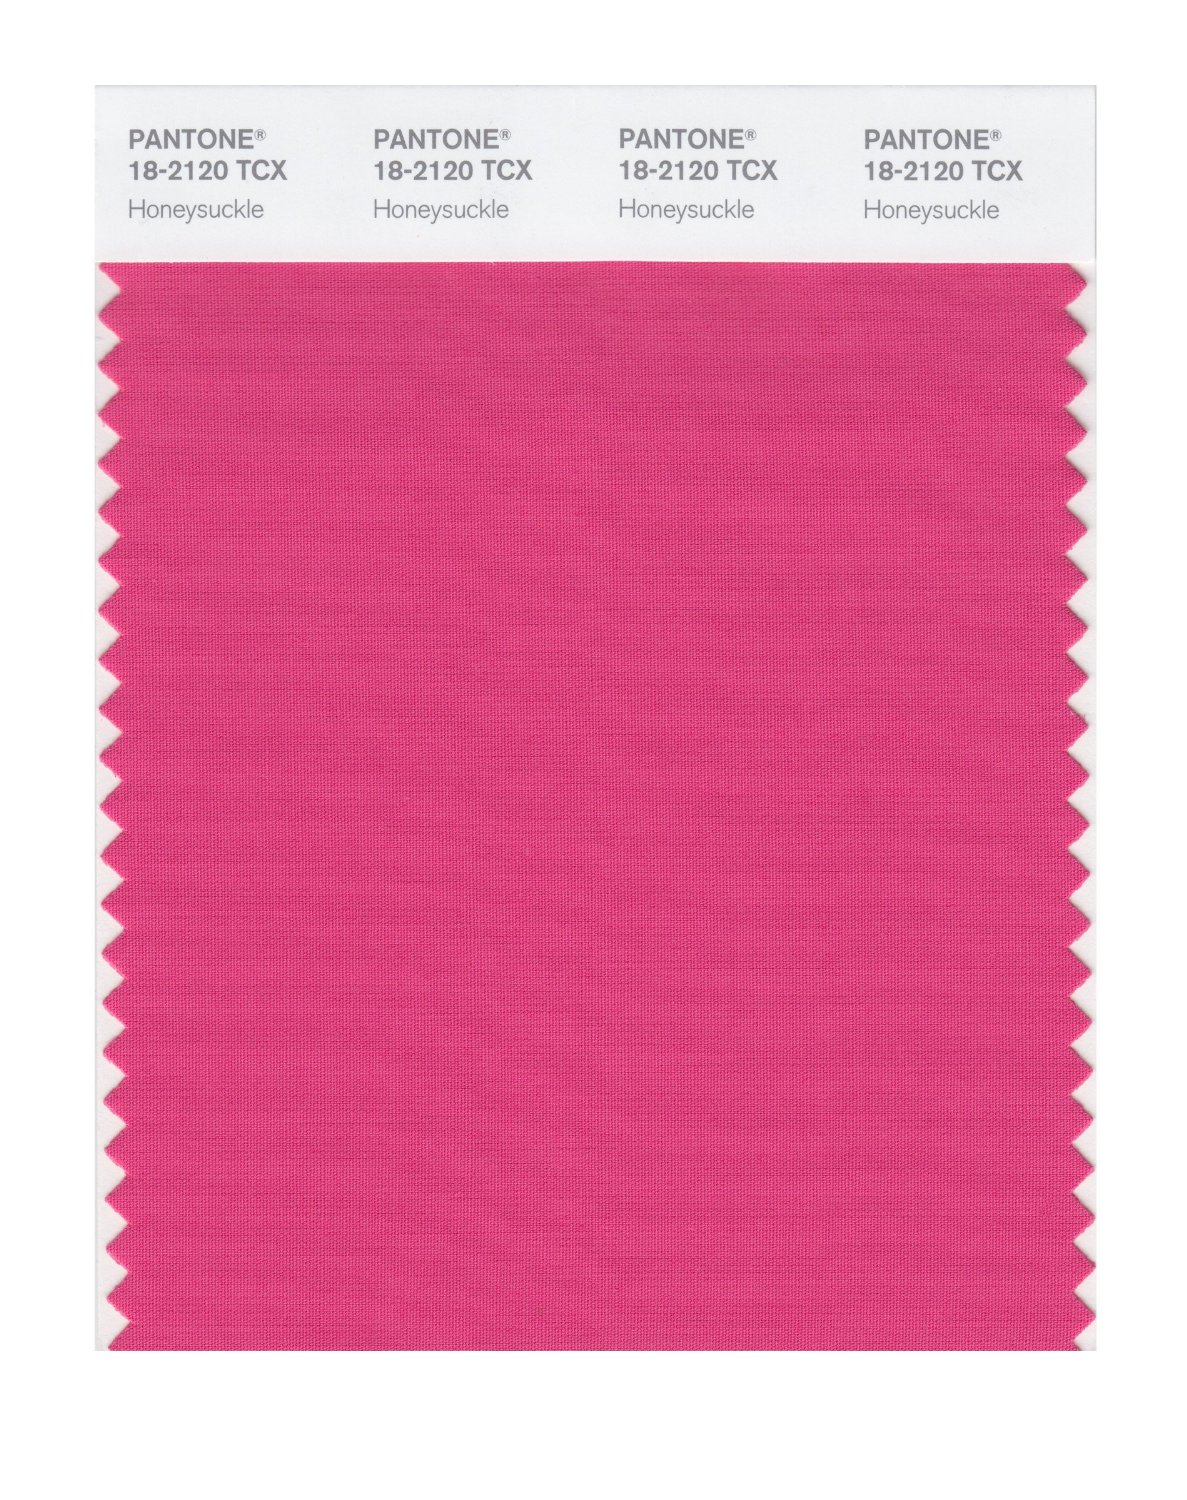 Pantone Smart Swatch 18-2120 Honeysuckle